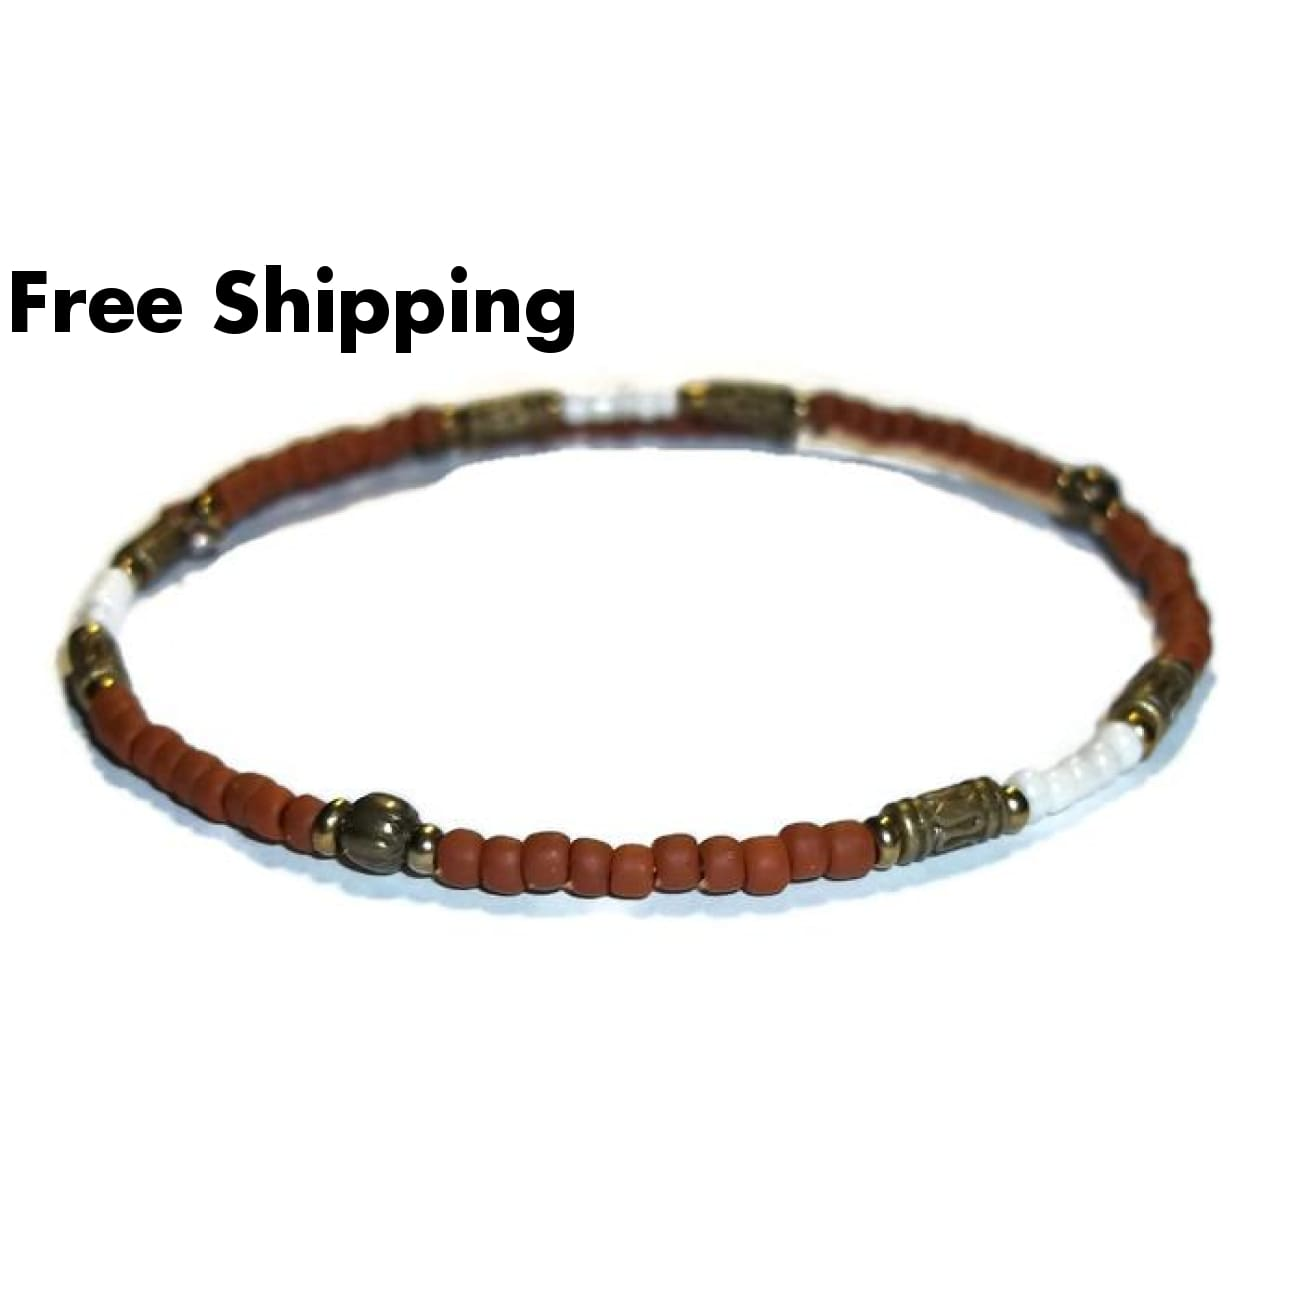 Terra Cotta & Cream Glass Beaded Bronze Artisan Crafted Stackables Adjustable Bracelet (L) - New Arrival